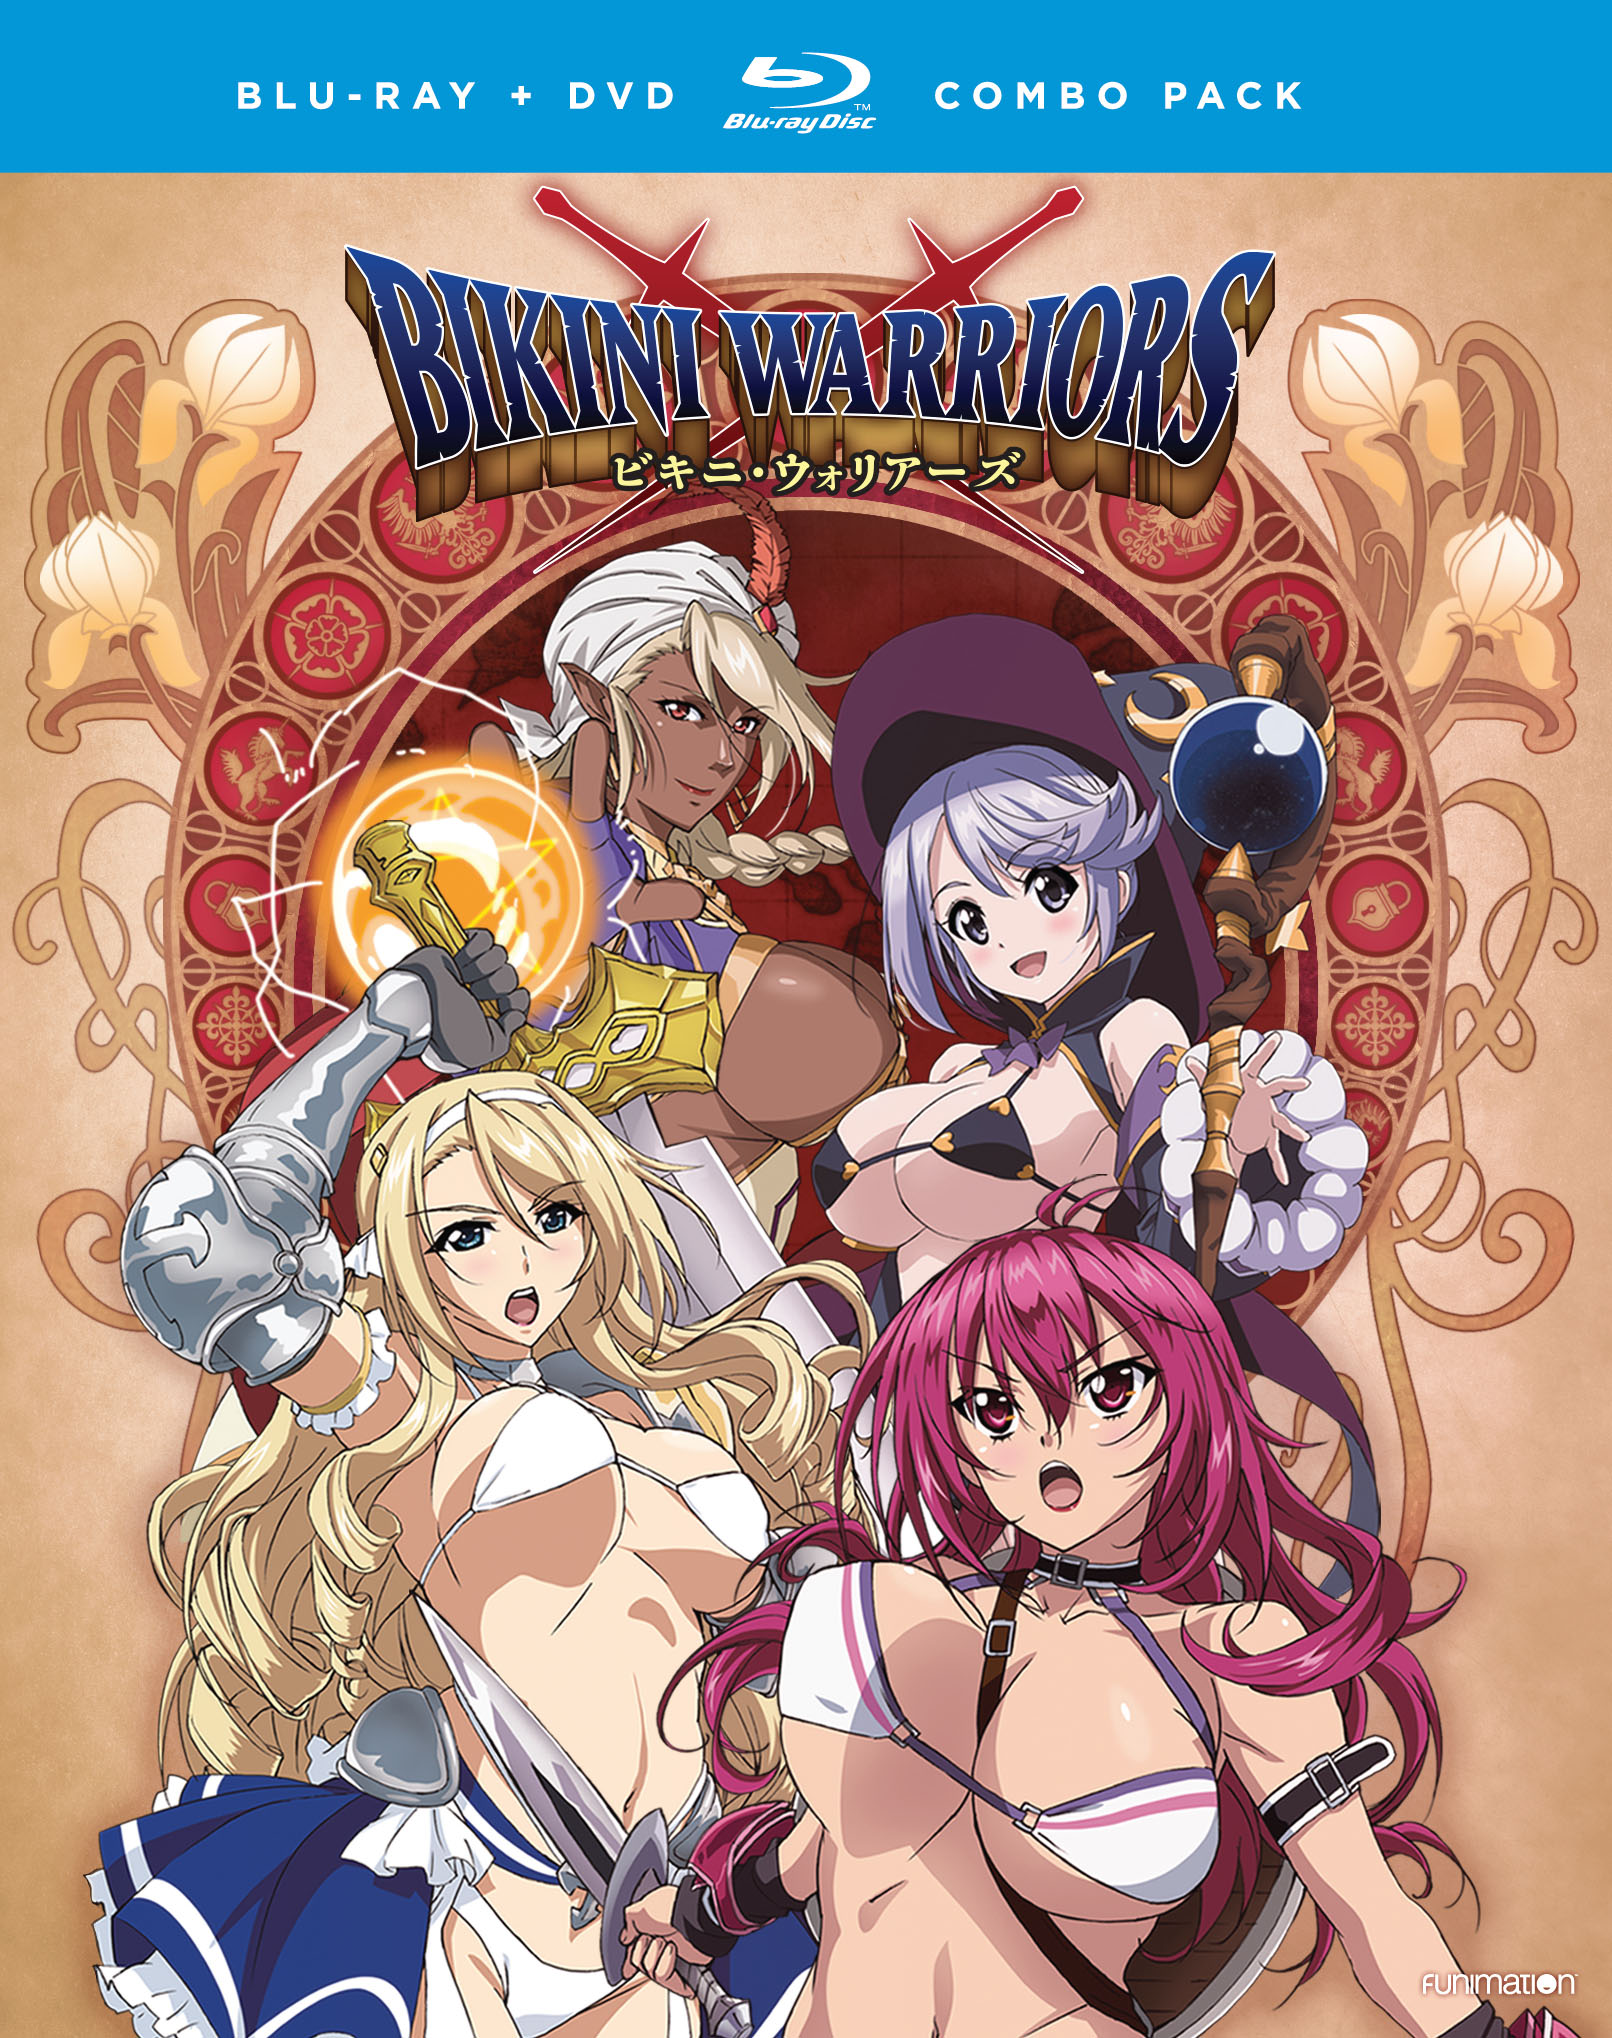 Bikini Warriors Blu-ray/DVD 704400072857